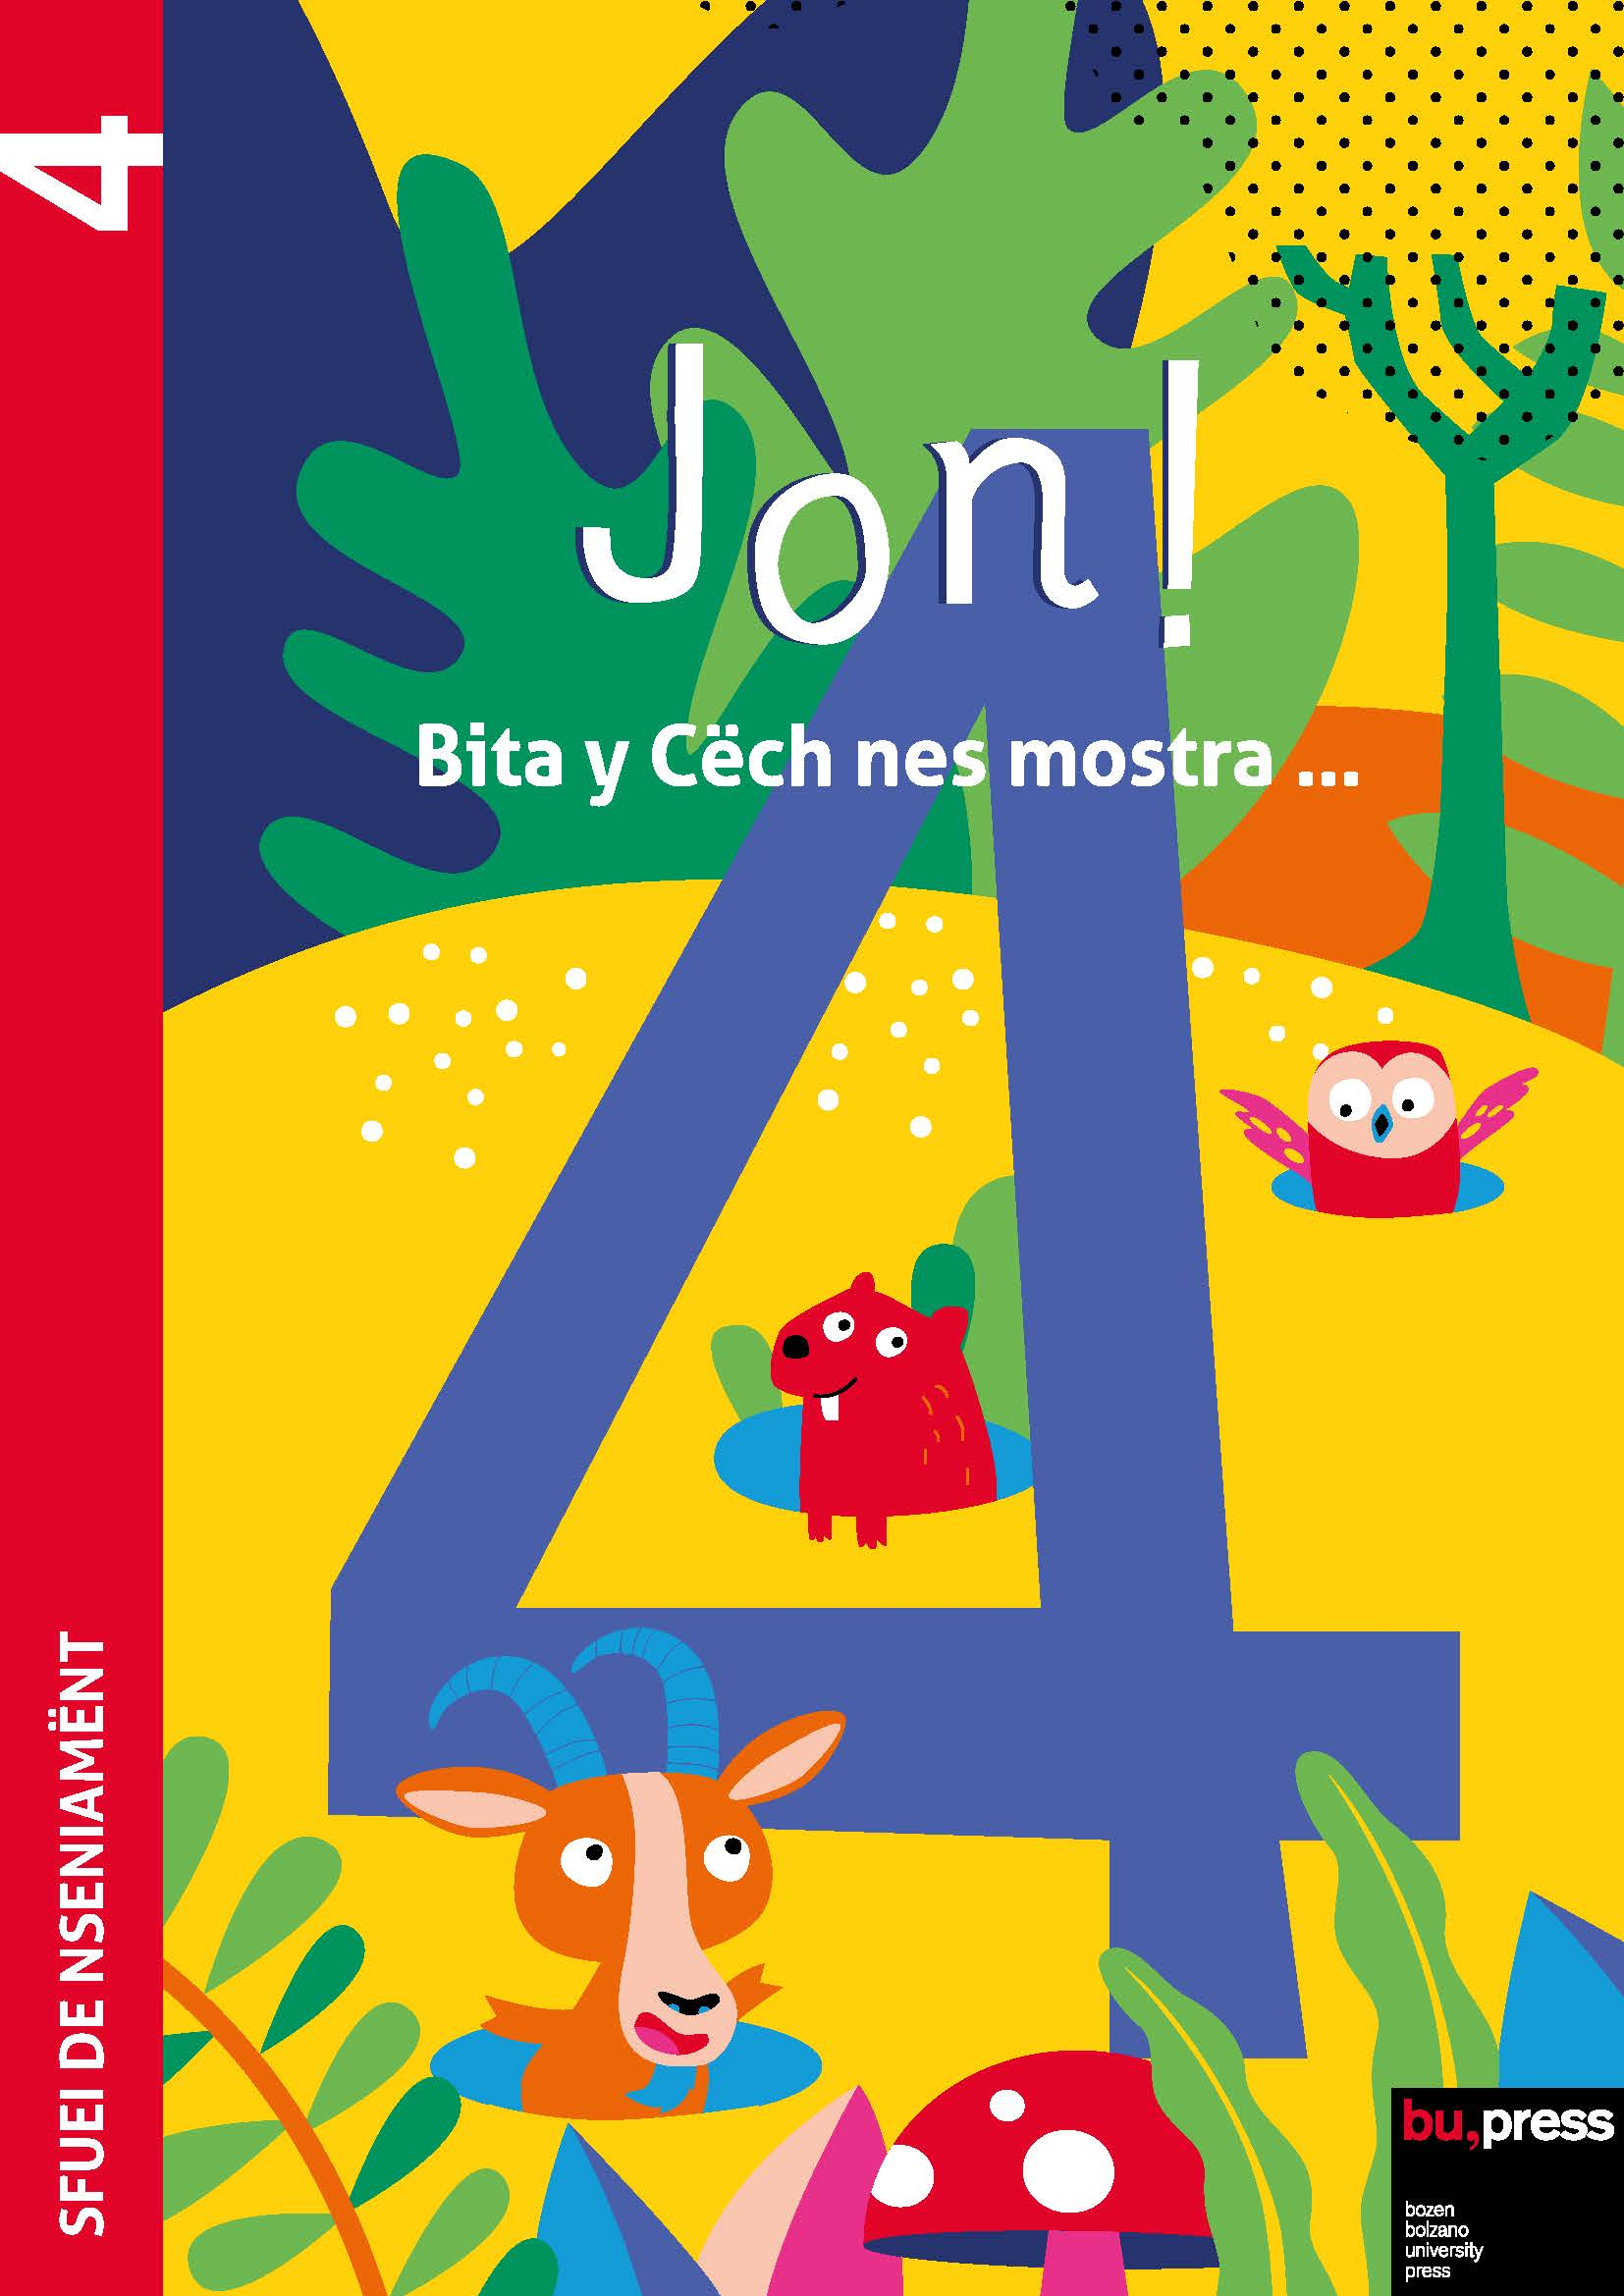 Cover of Jon! 4 – Sfuei de nseniamënt